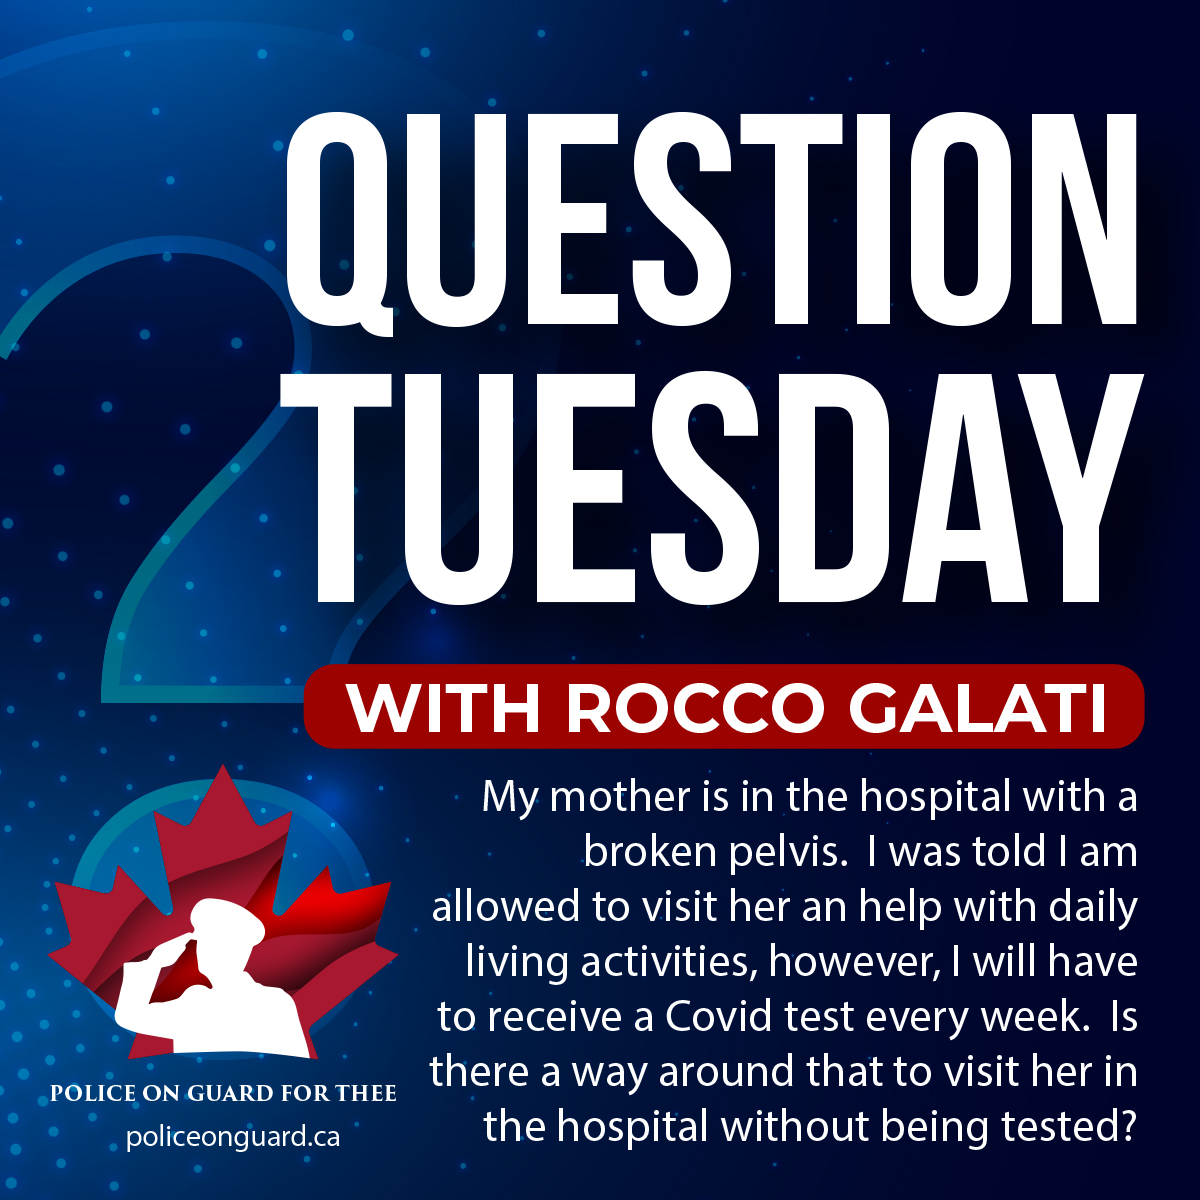 Question Tuesday with Rocco - My mother is in the hospital, Is there a way around that to visit her without being tested?